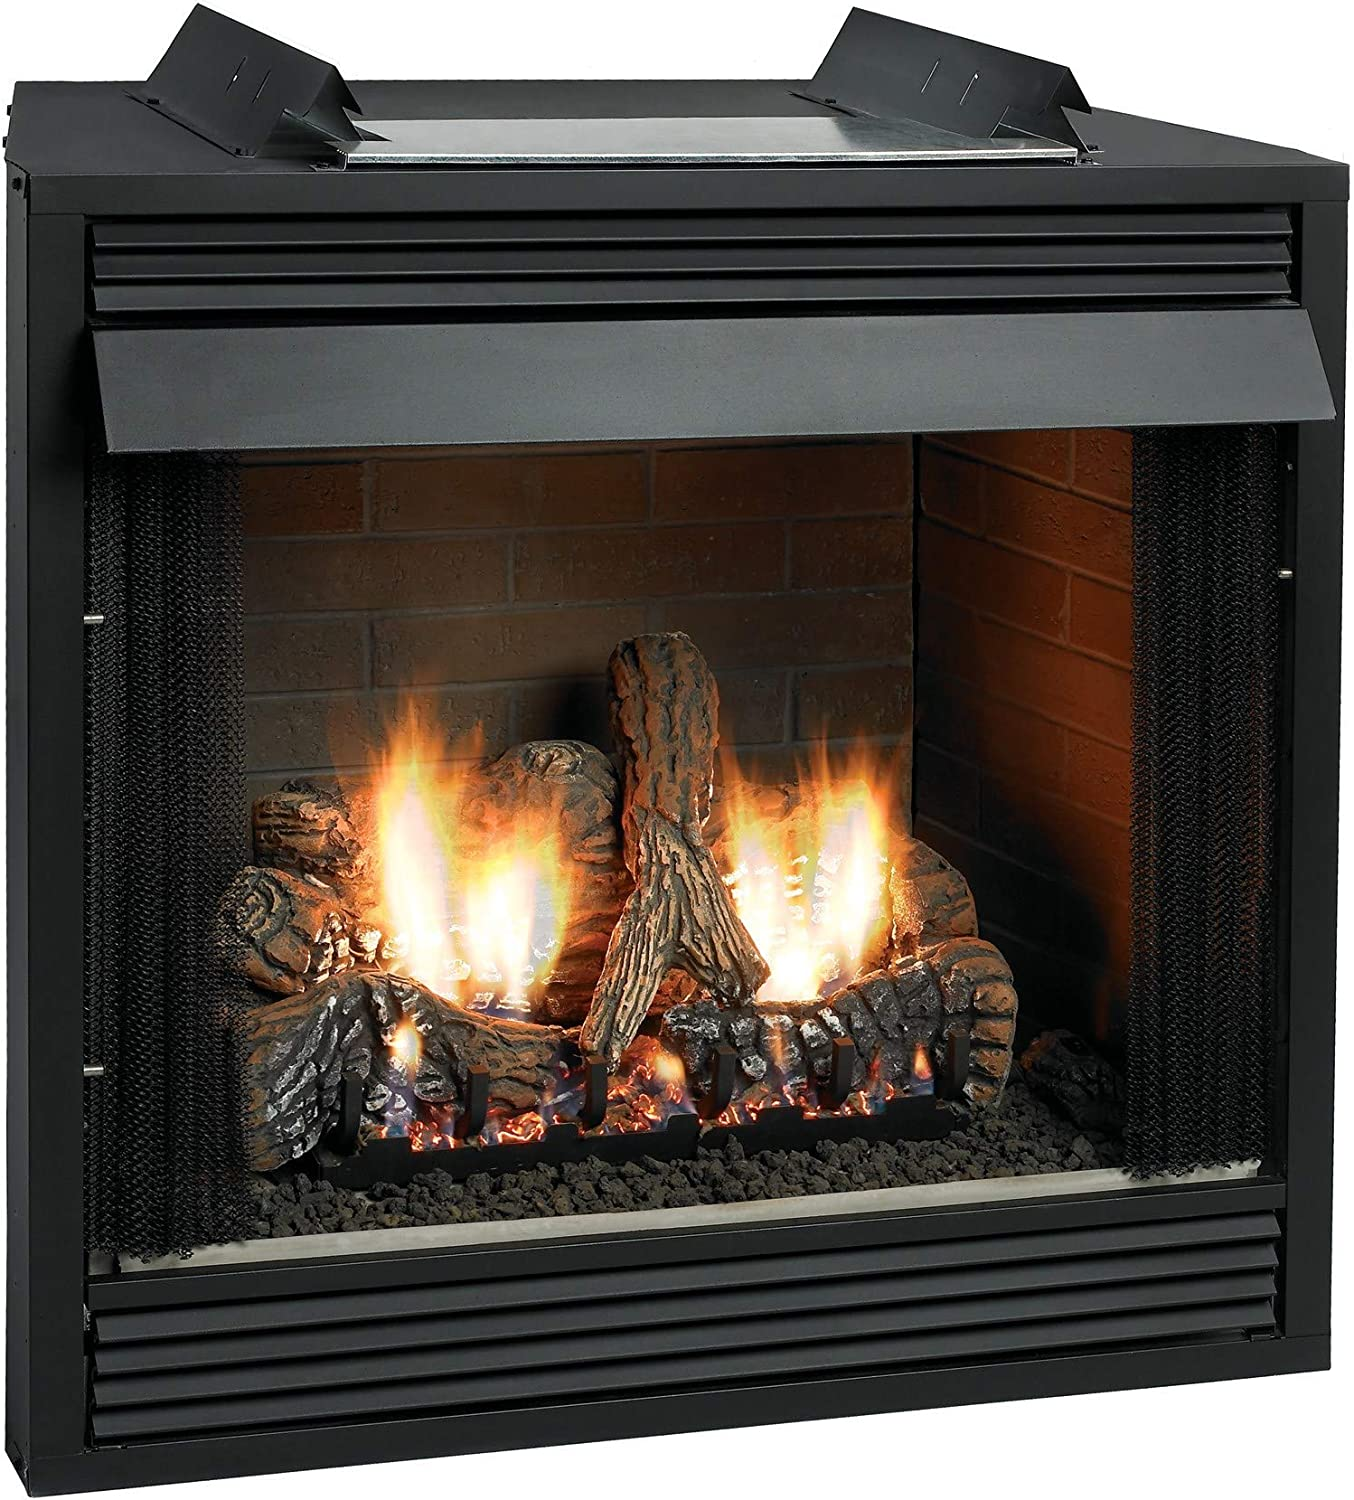 Deluxe 42 Lowest price challenge Cheap bargain inch Vent-Free Louver Firebox -